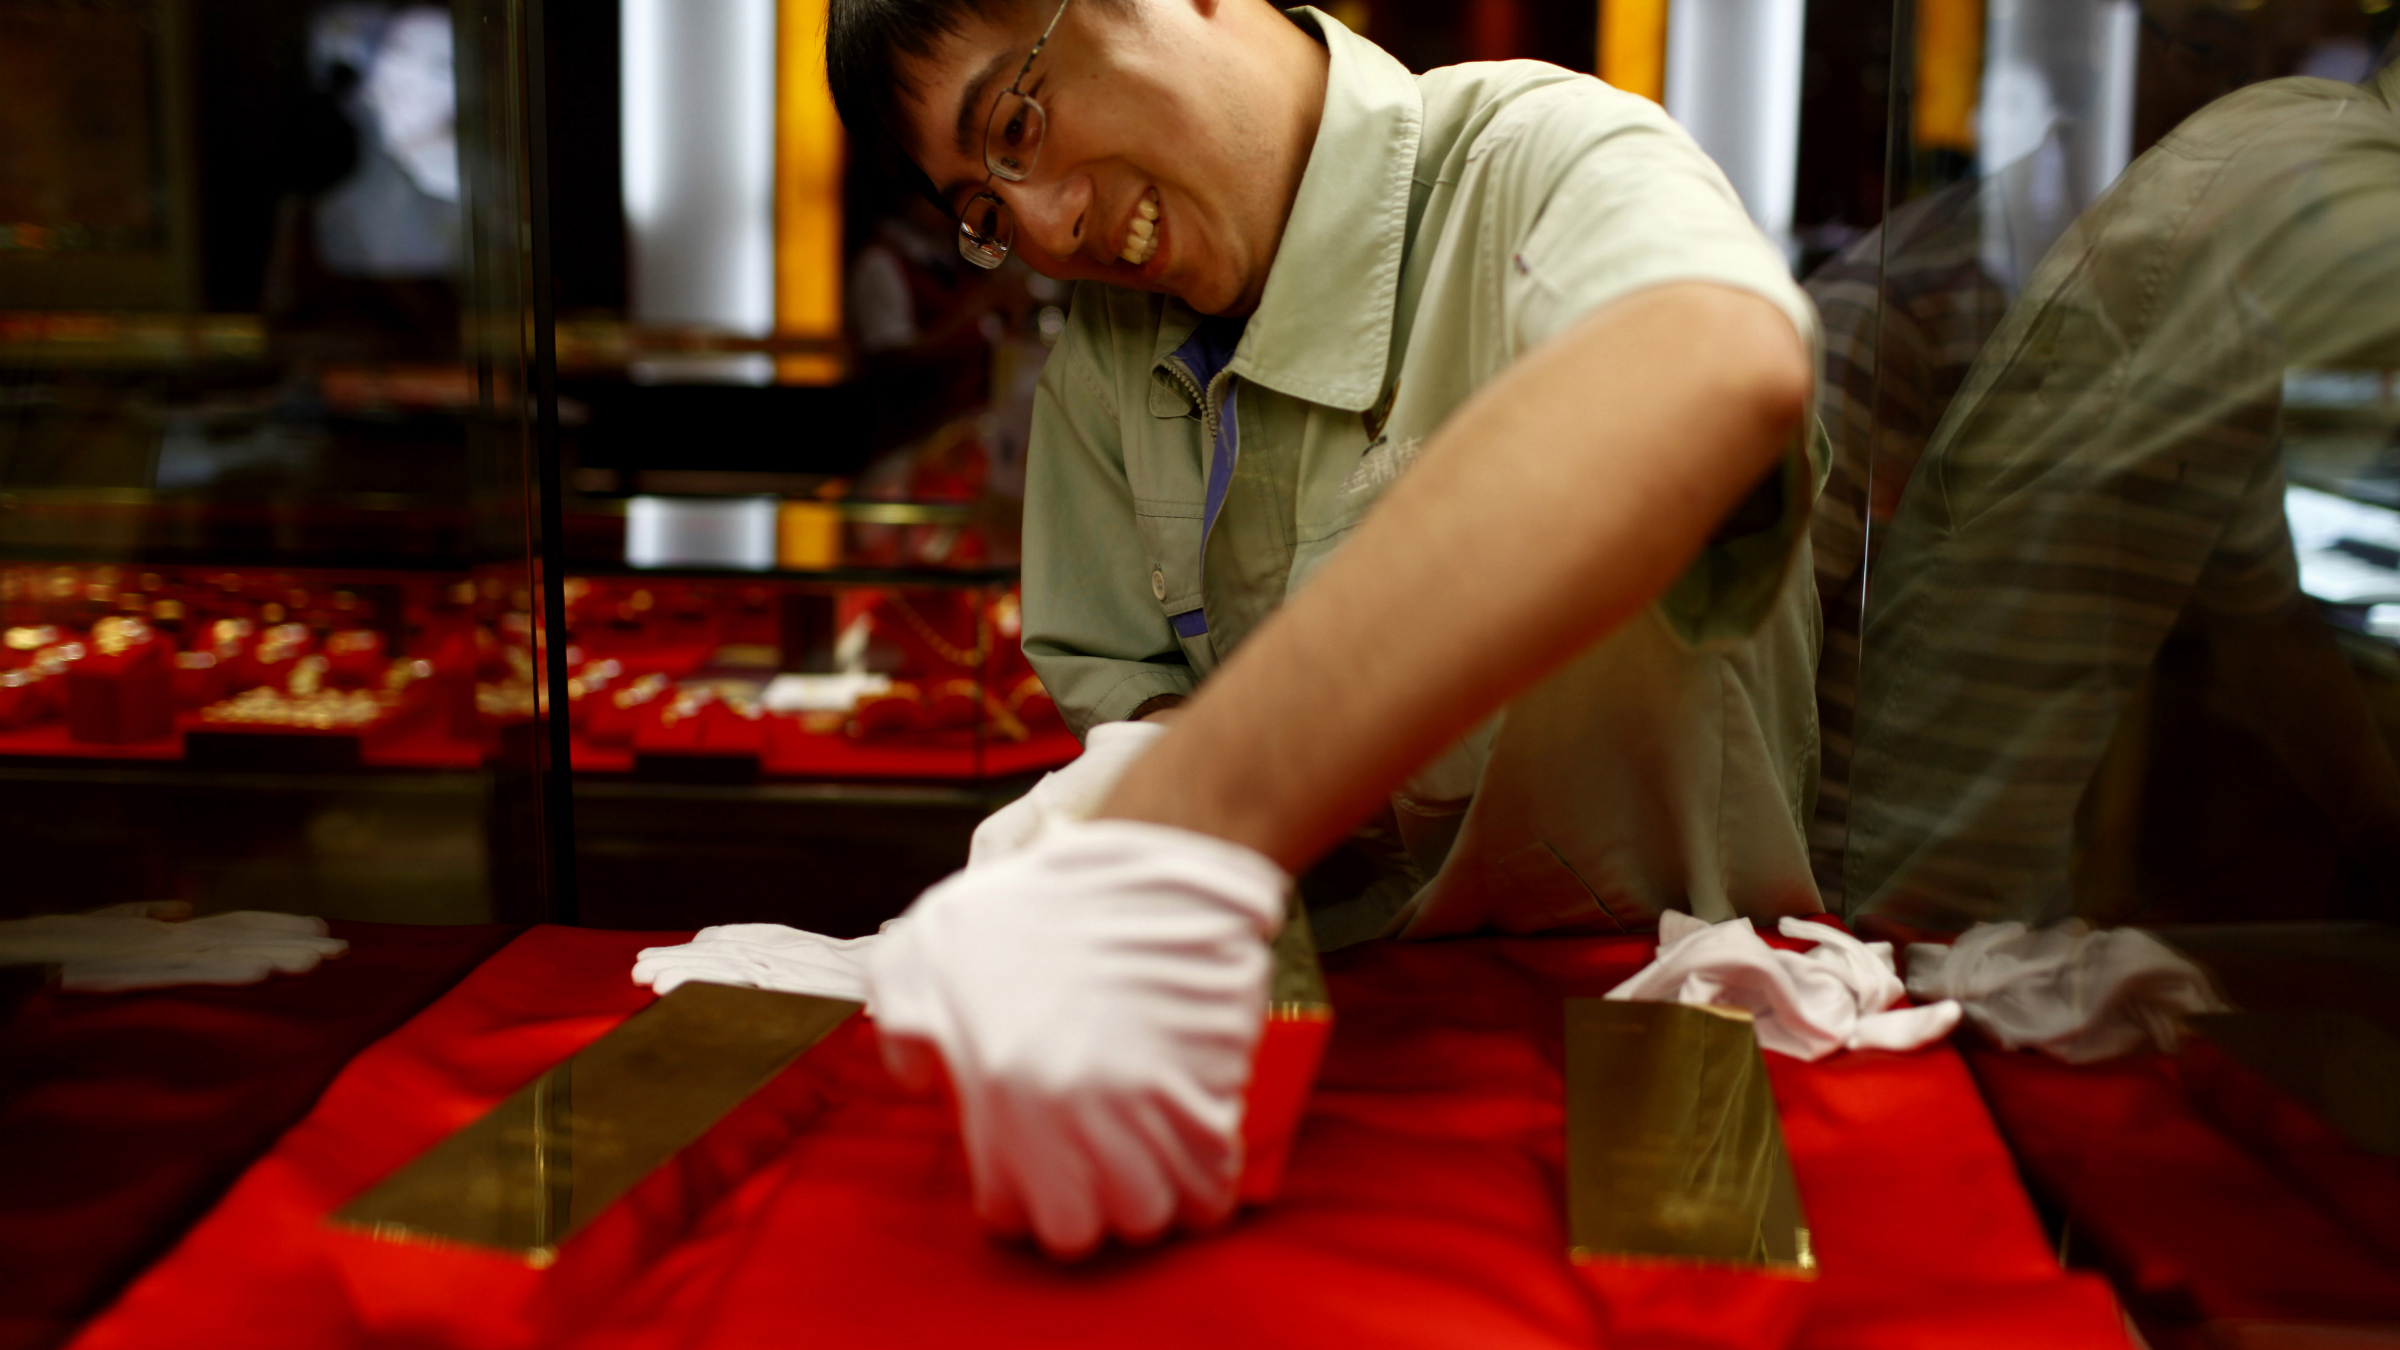 A salesman tries to carry a 25 kilograms gold brick to show at a gold products store on September 1, 2012 in Zhaoyuan, China. Zhaoyuan, the Chinese gold capital known as China's gold production base, produces 1/8 of the nation's mined gold and has gold reserves that account for 1/7 of the nation's total. It has created a gold industry which involves exploration, mining, smelting and refining gold and silver products. China has been the world's largest gold producer for five years , (Photo by Hong Wu/Getty Images